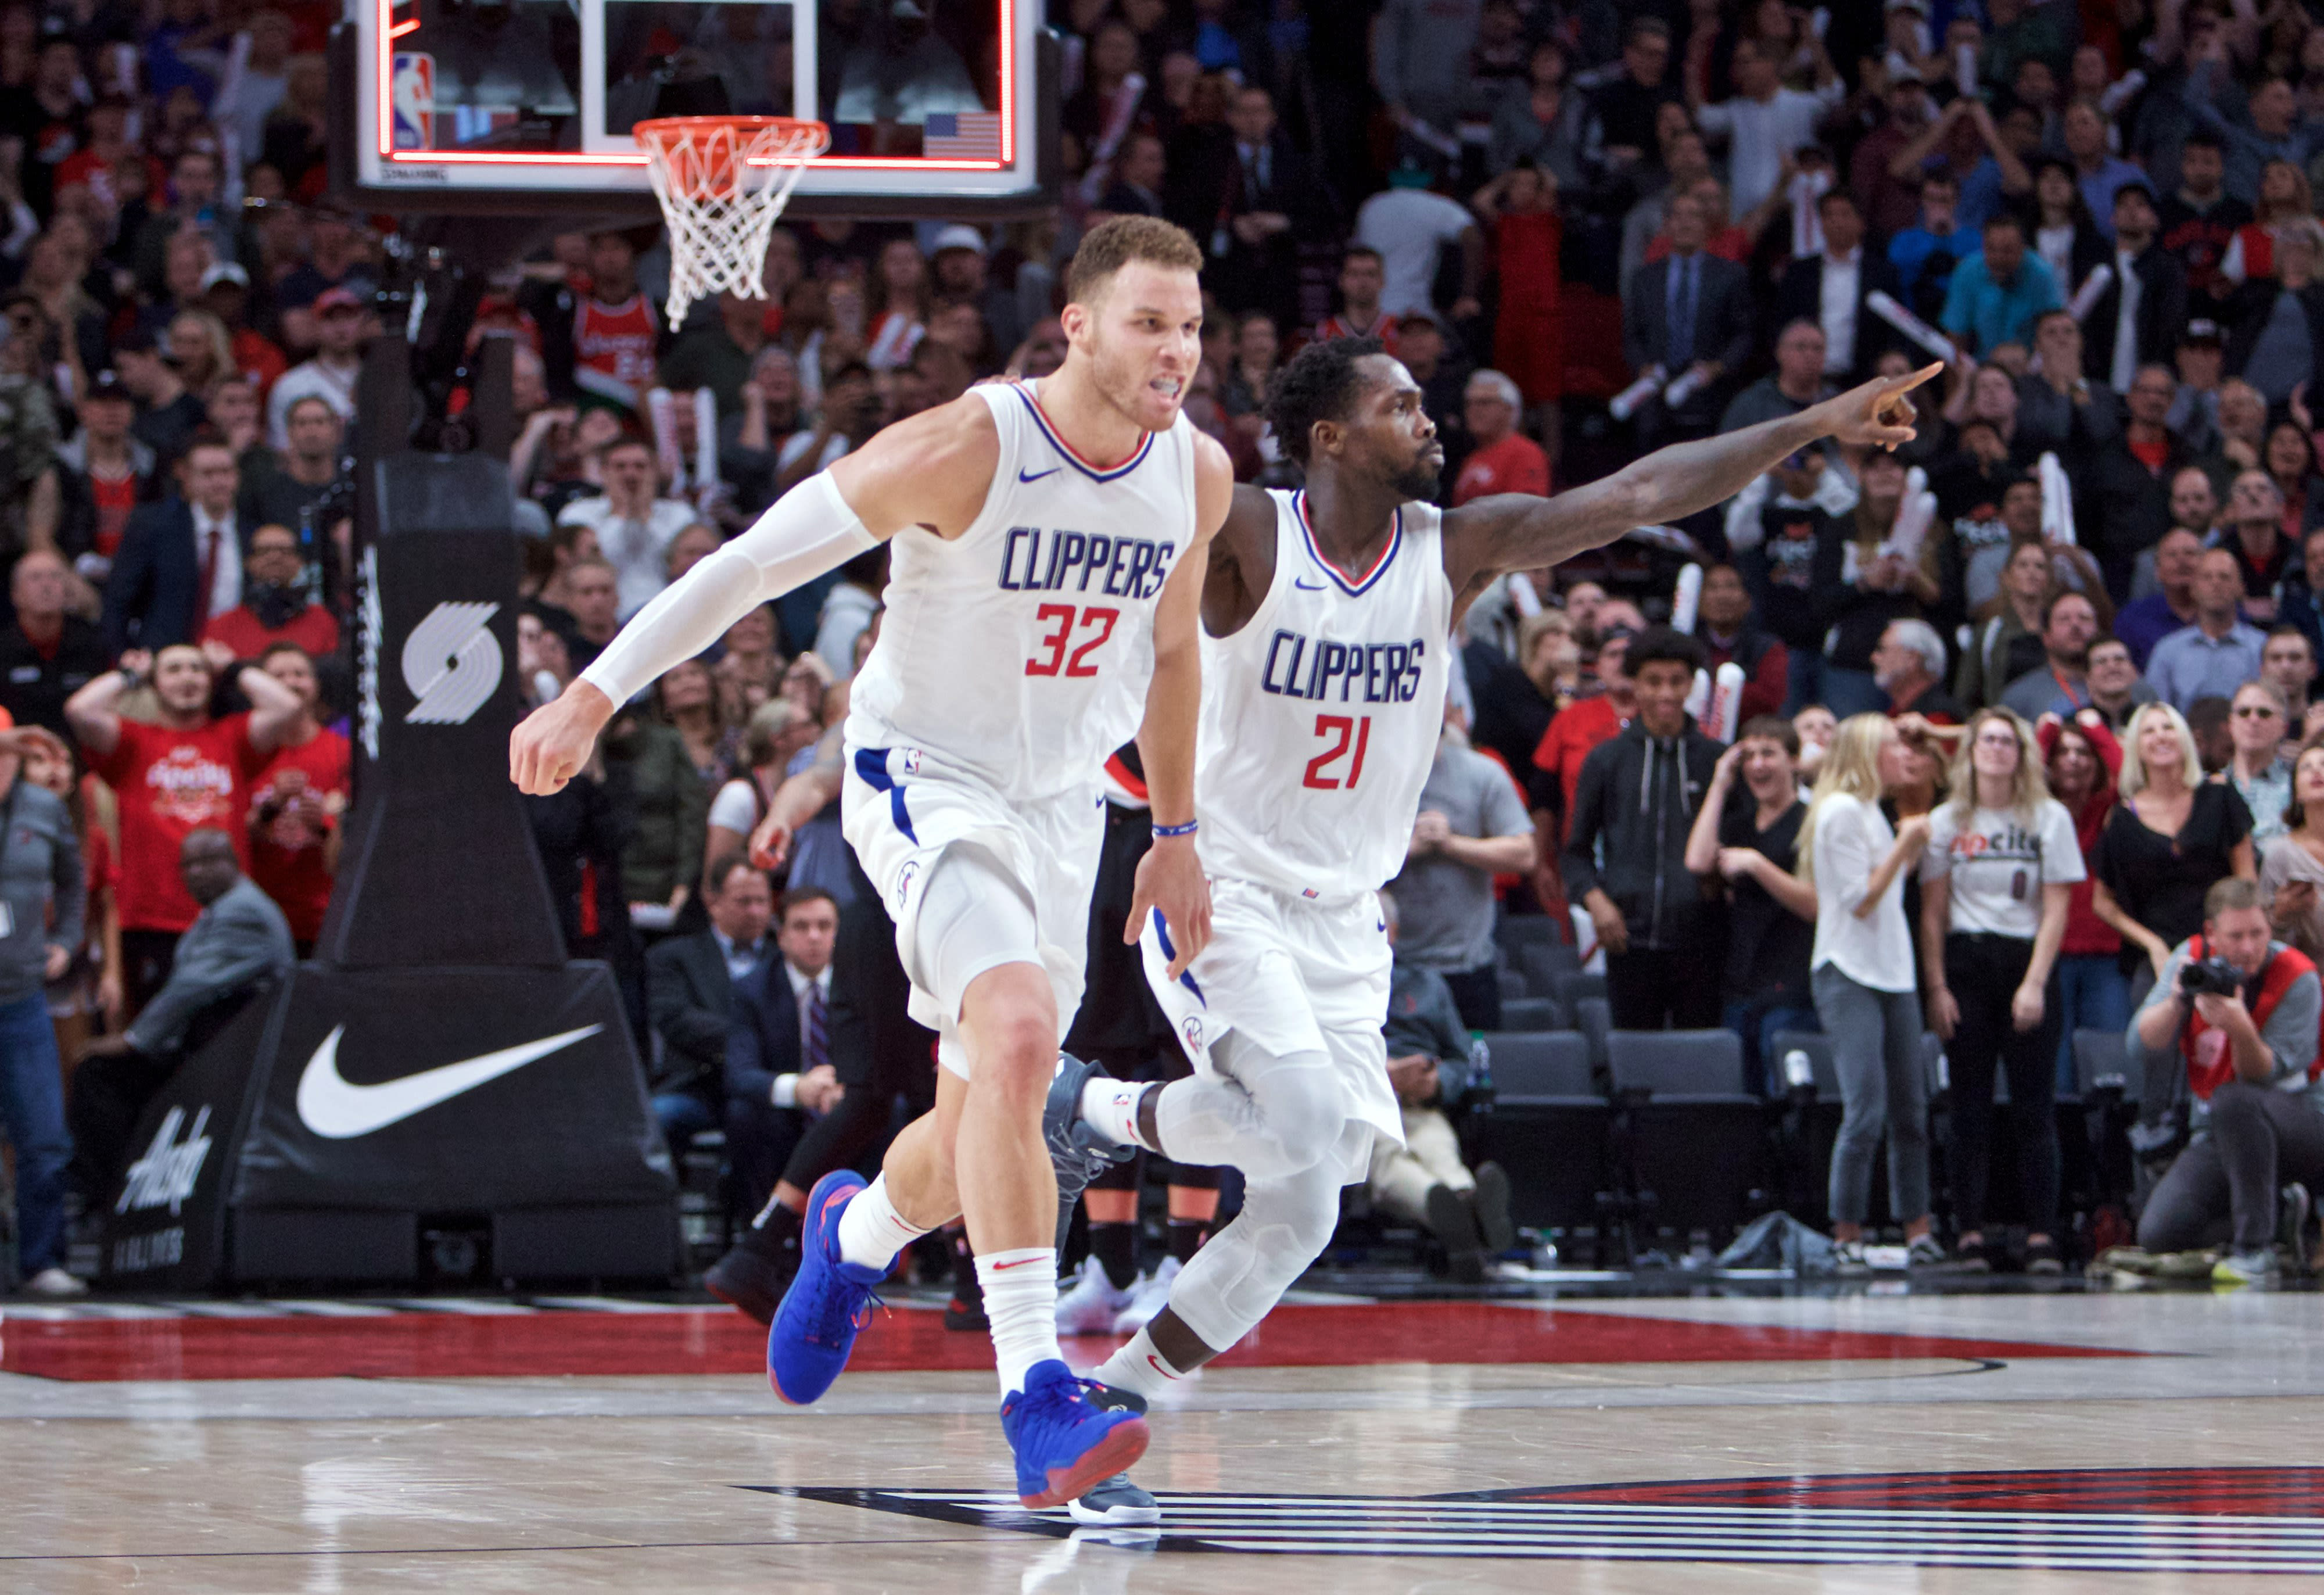 Blake Griffin Clippers Blazers 2017